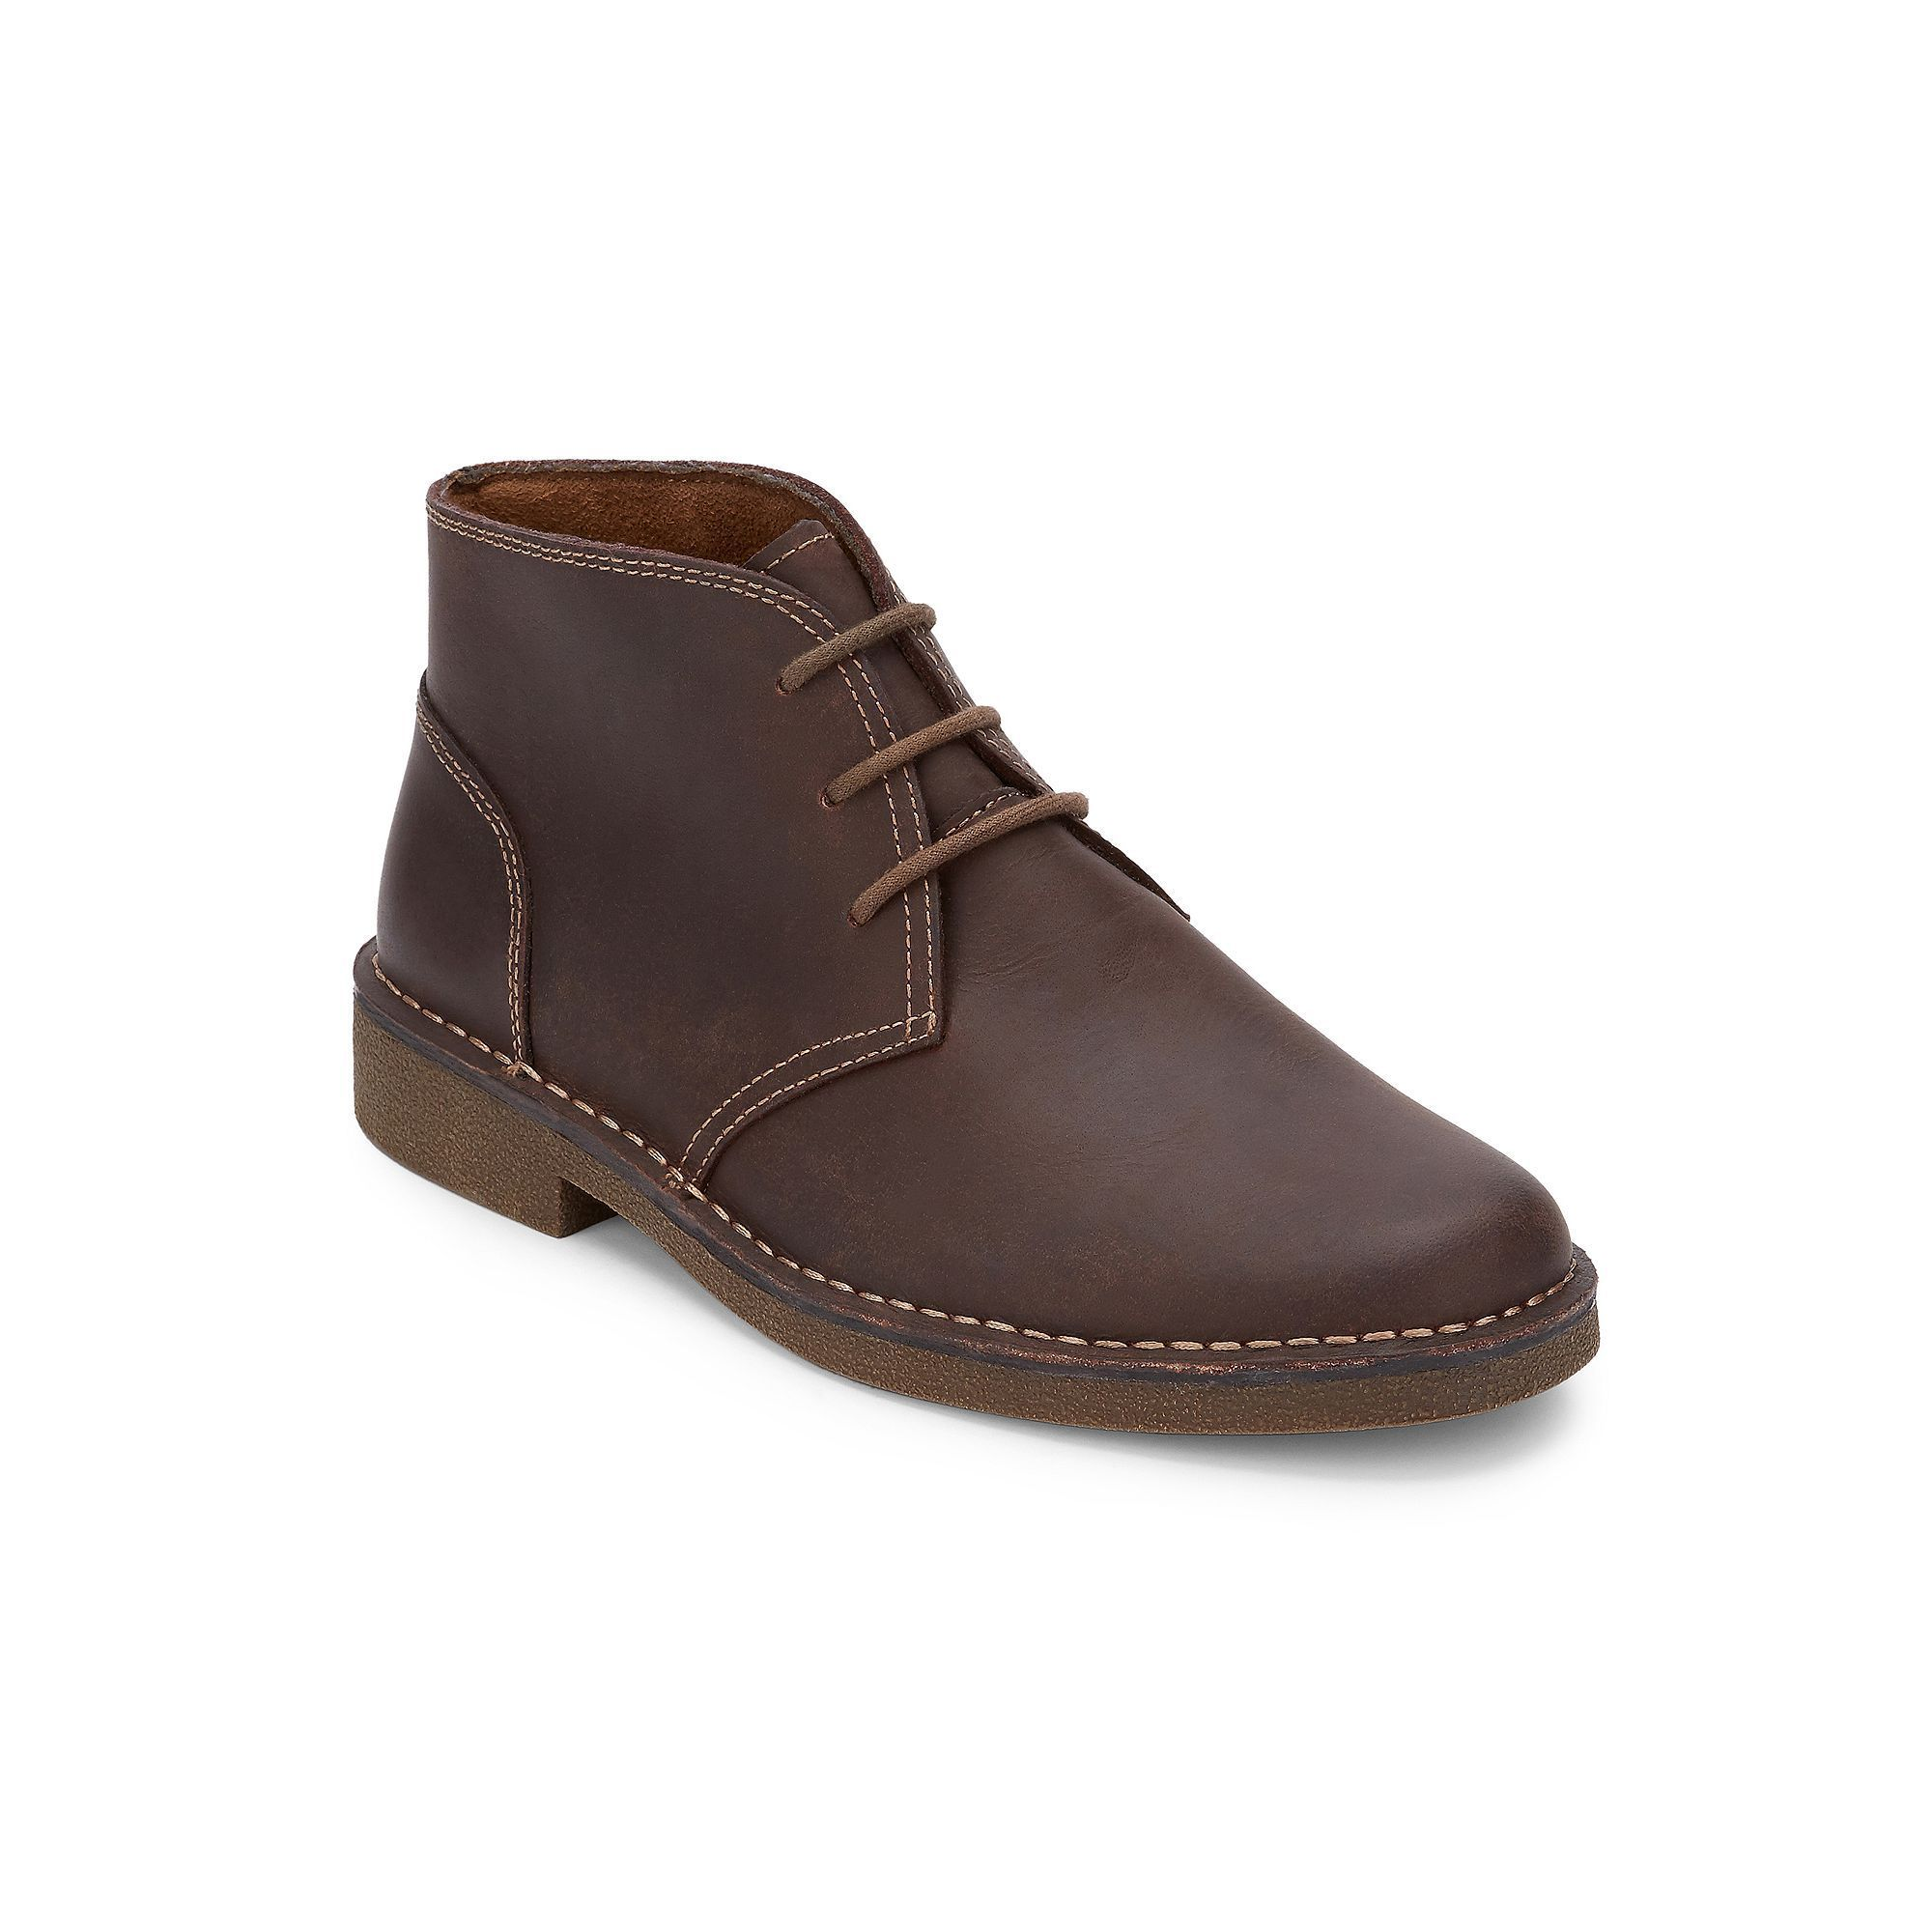 Dockers Tussock Men's Leather Chukka Boots Mens leather